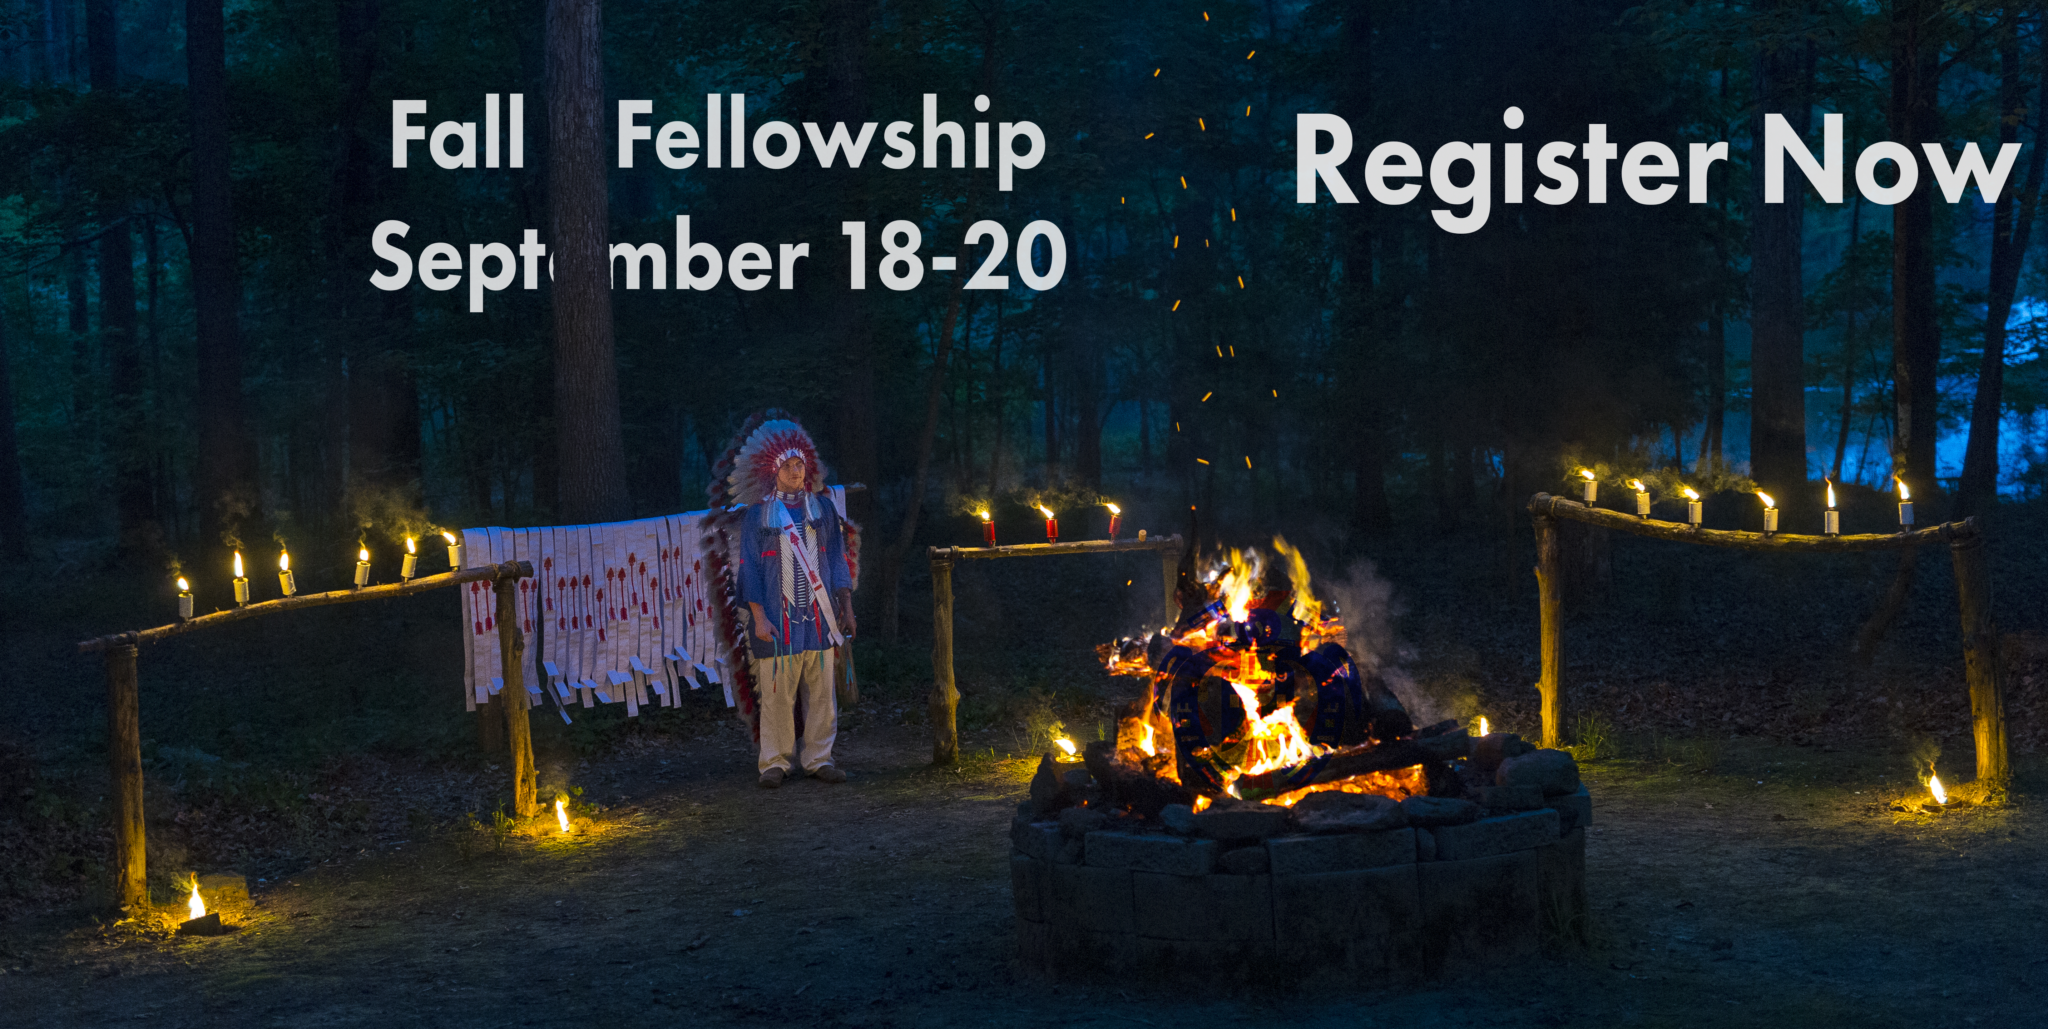 Fall Fellowship